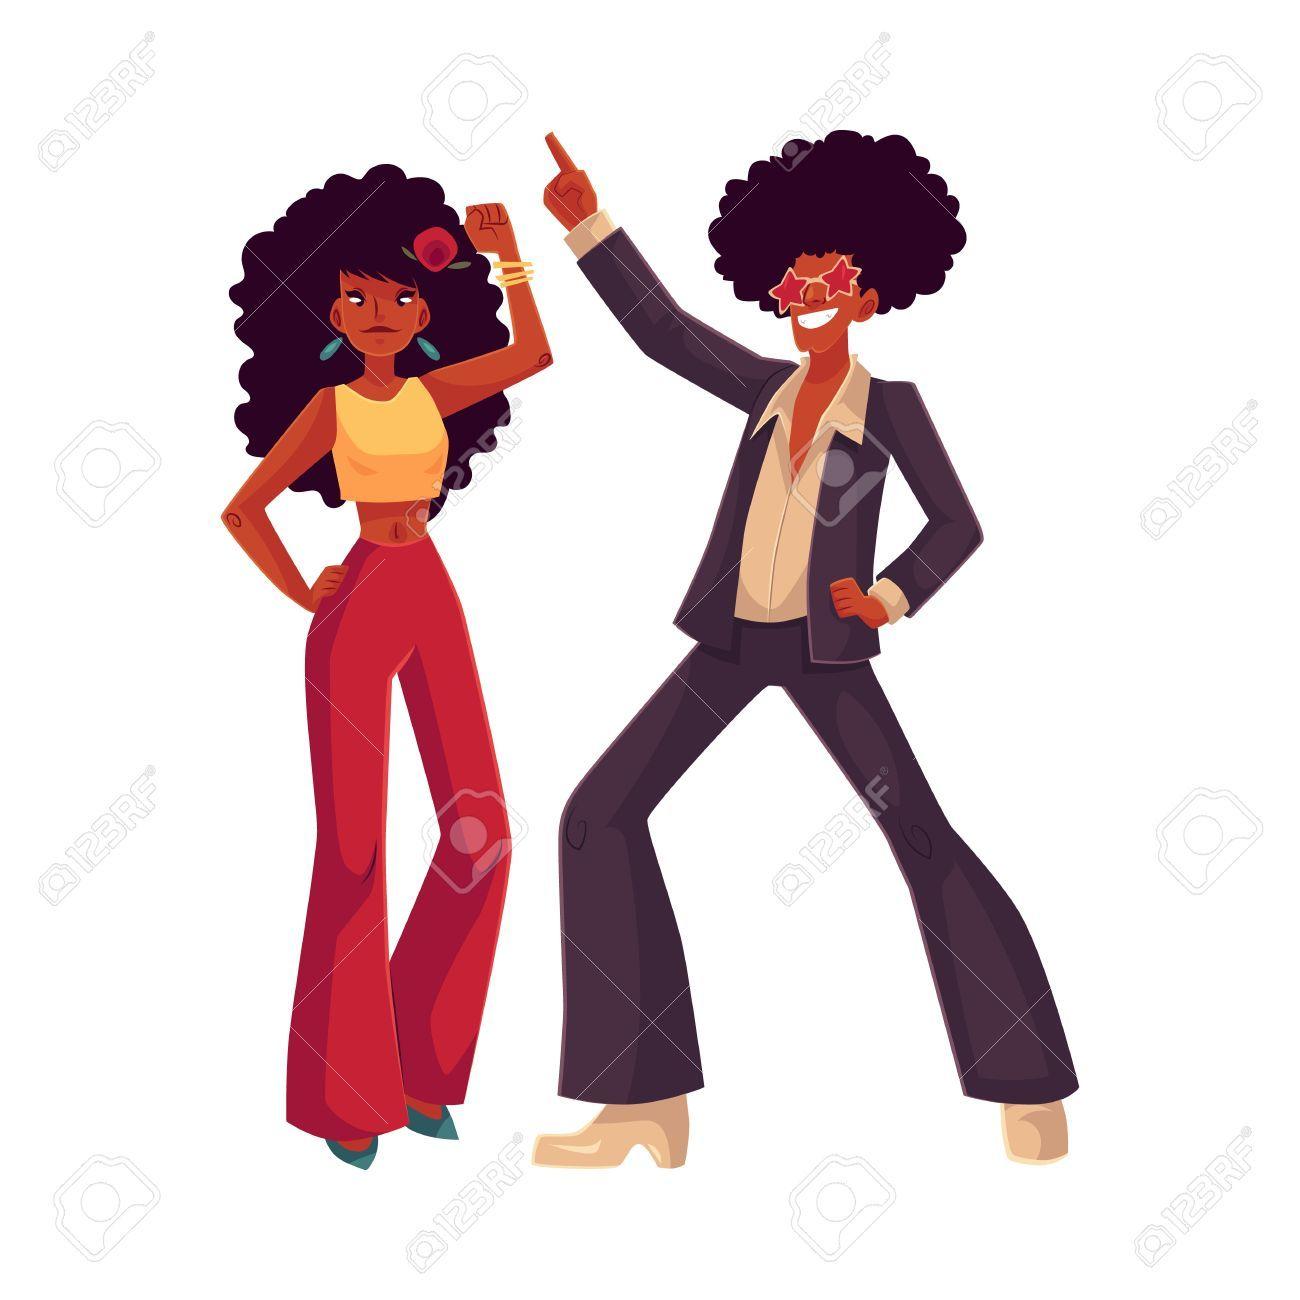 Image result for 70s african american clipart.